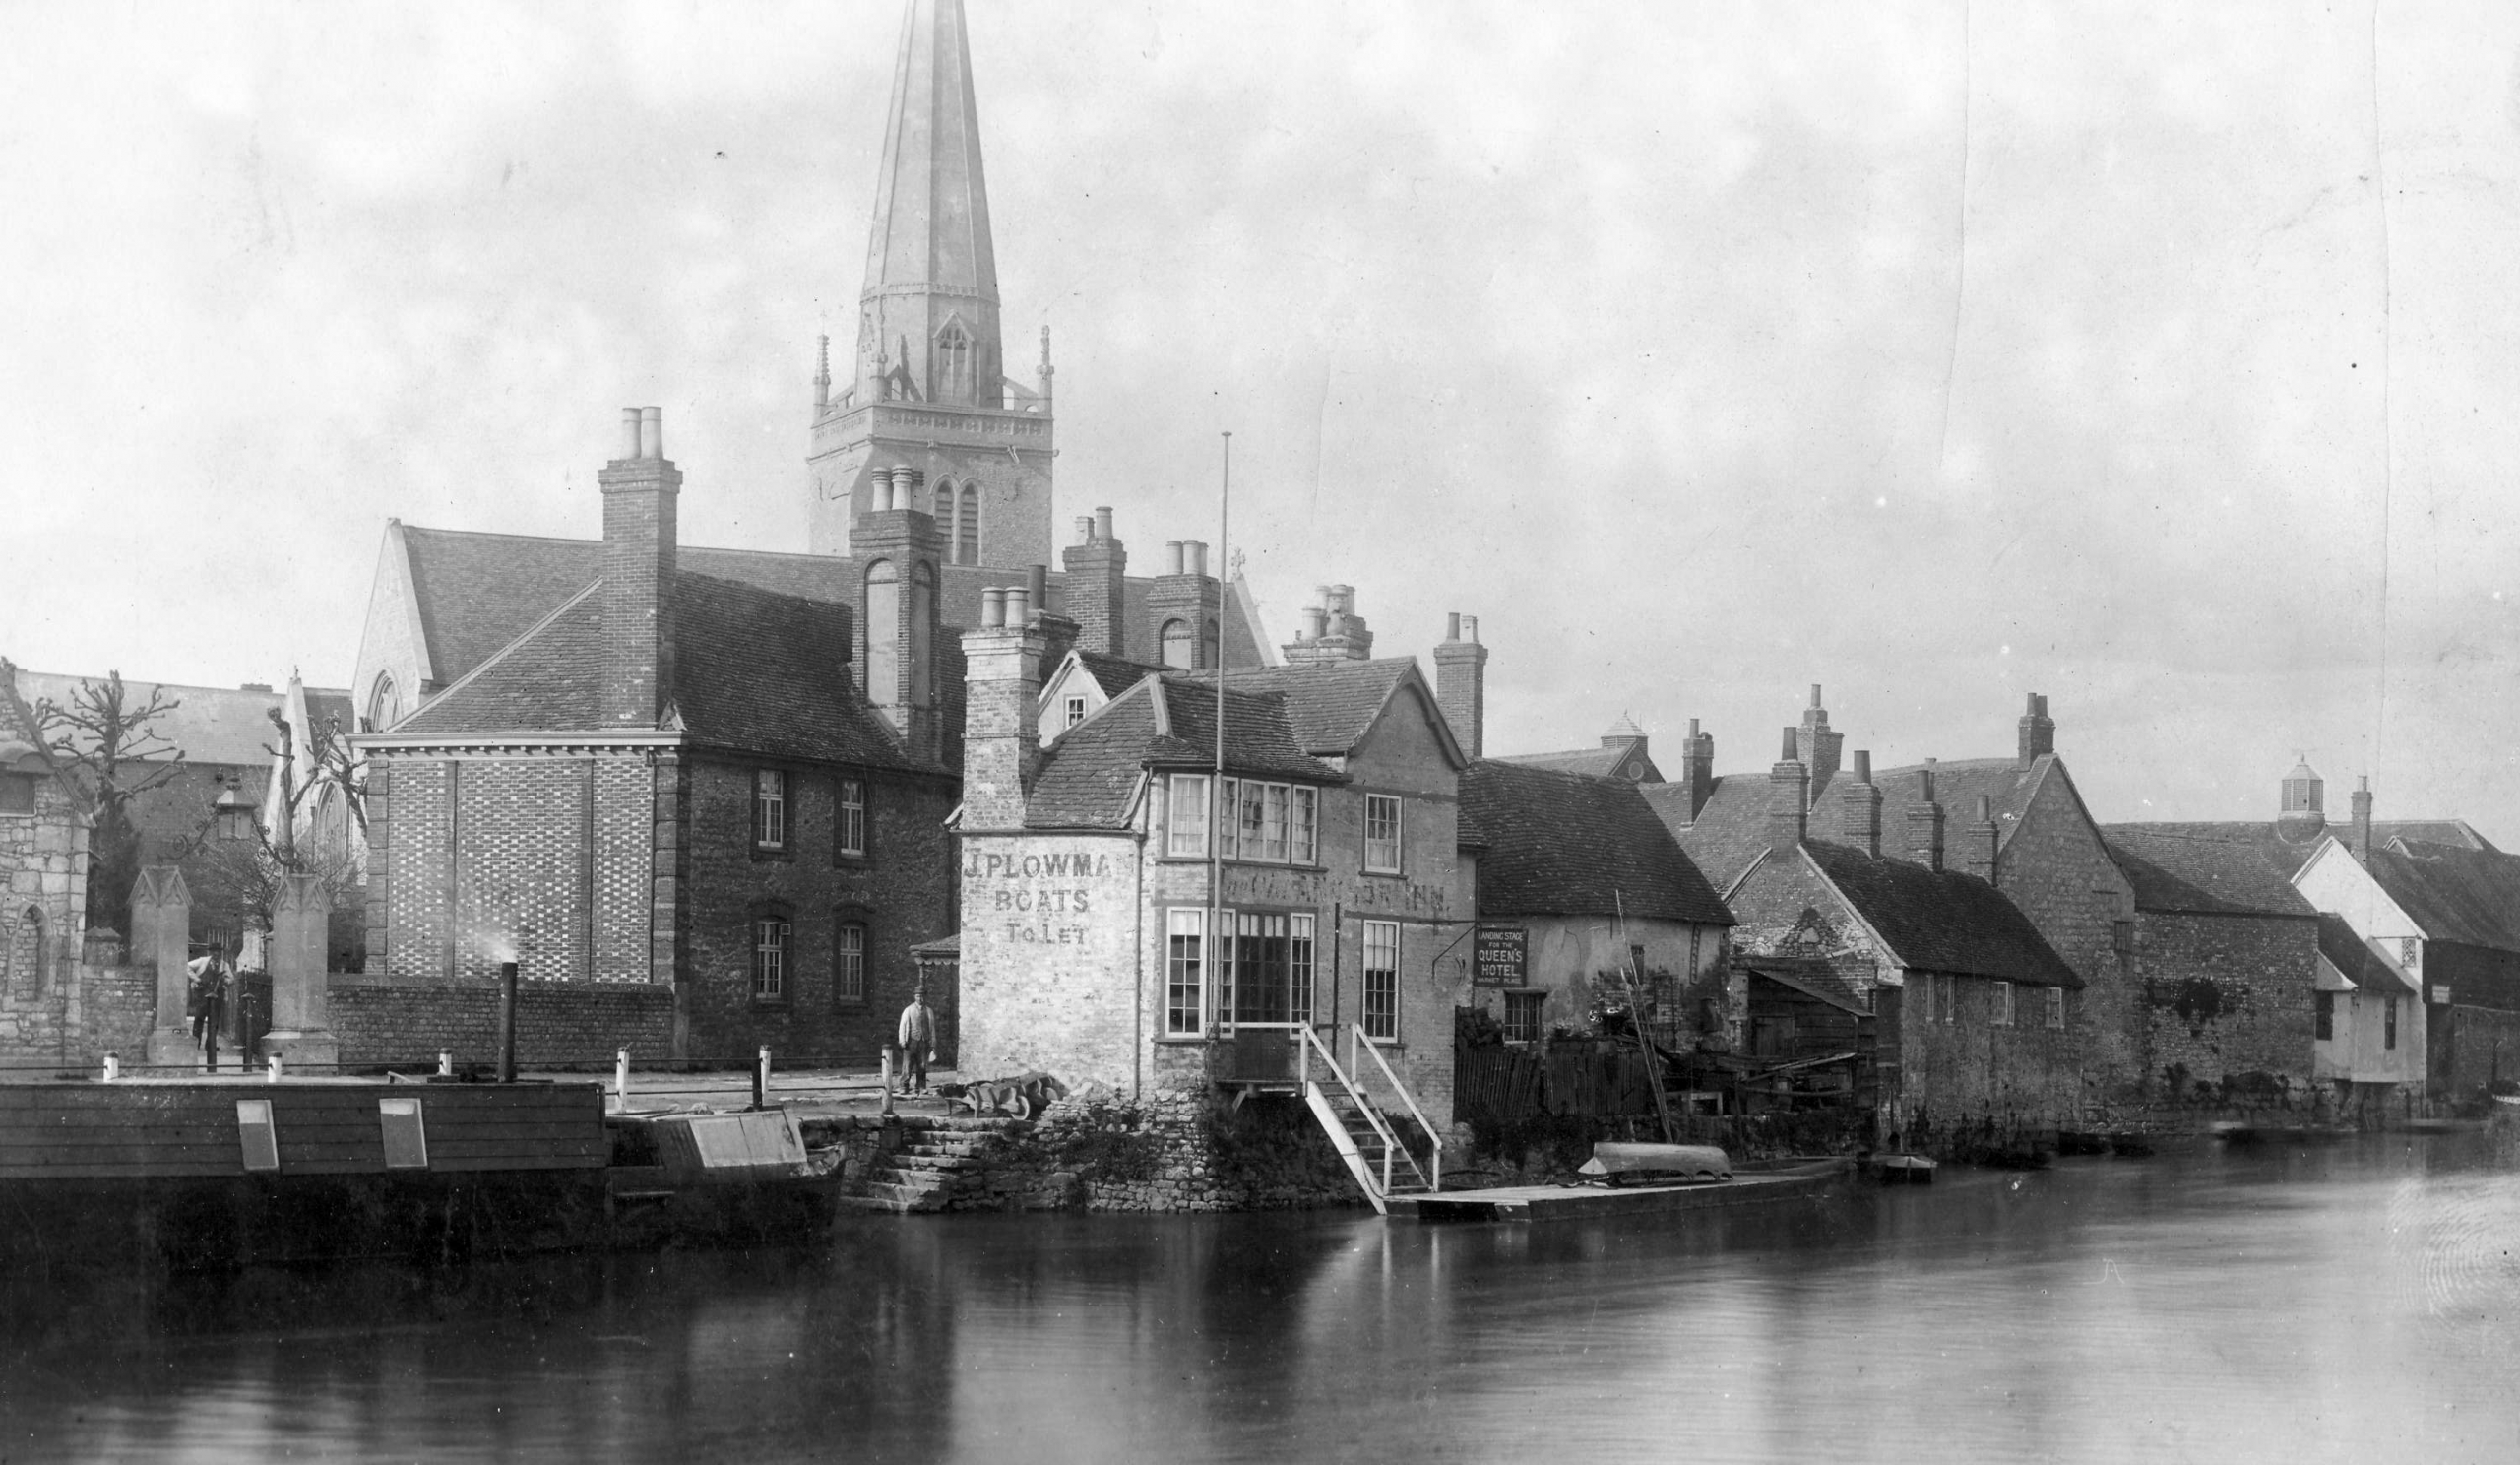 The Almshouses-over-the-Water